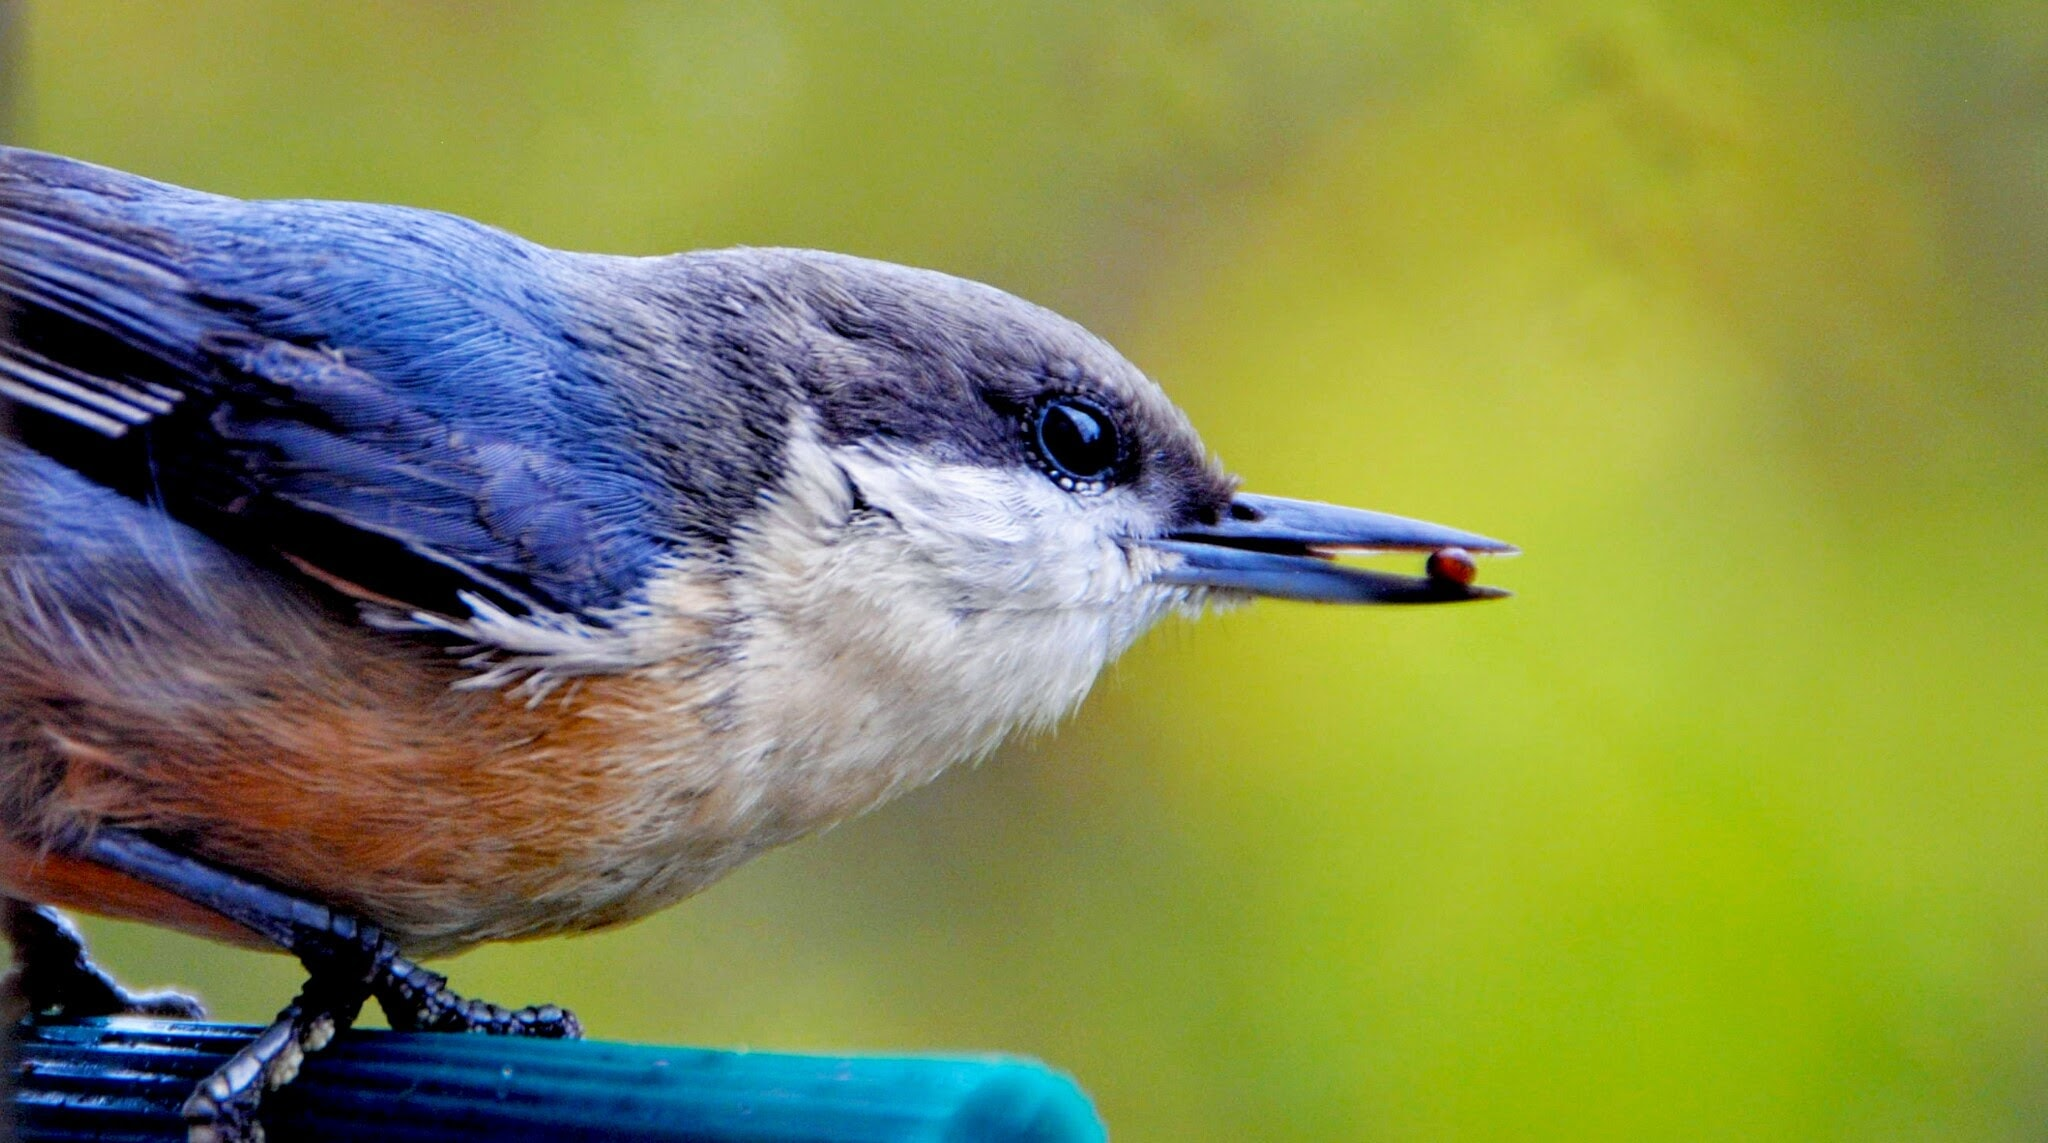 A close-up of a small blue and orange bird clutching a tiny seed in its beak